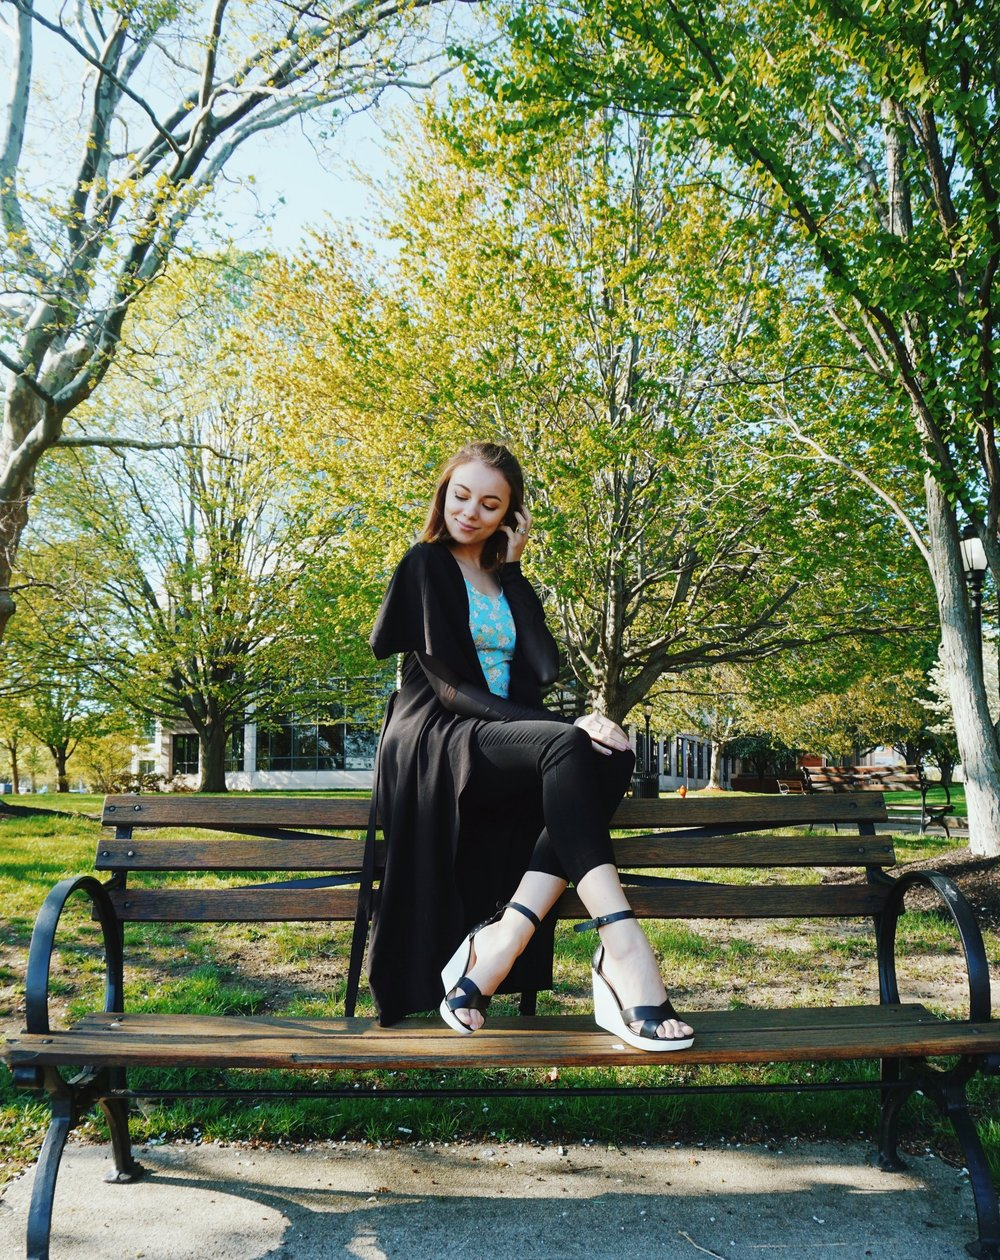 A girl sitting on a bench of the park in a stylish summer outfit.